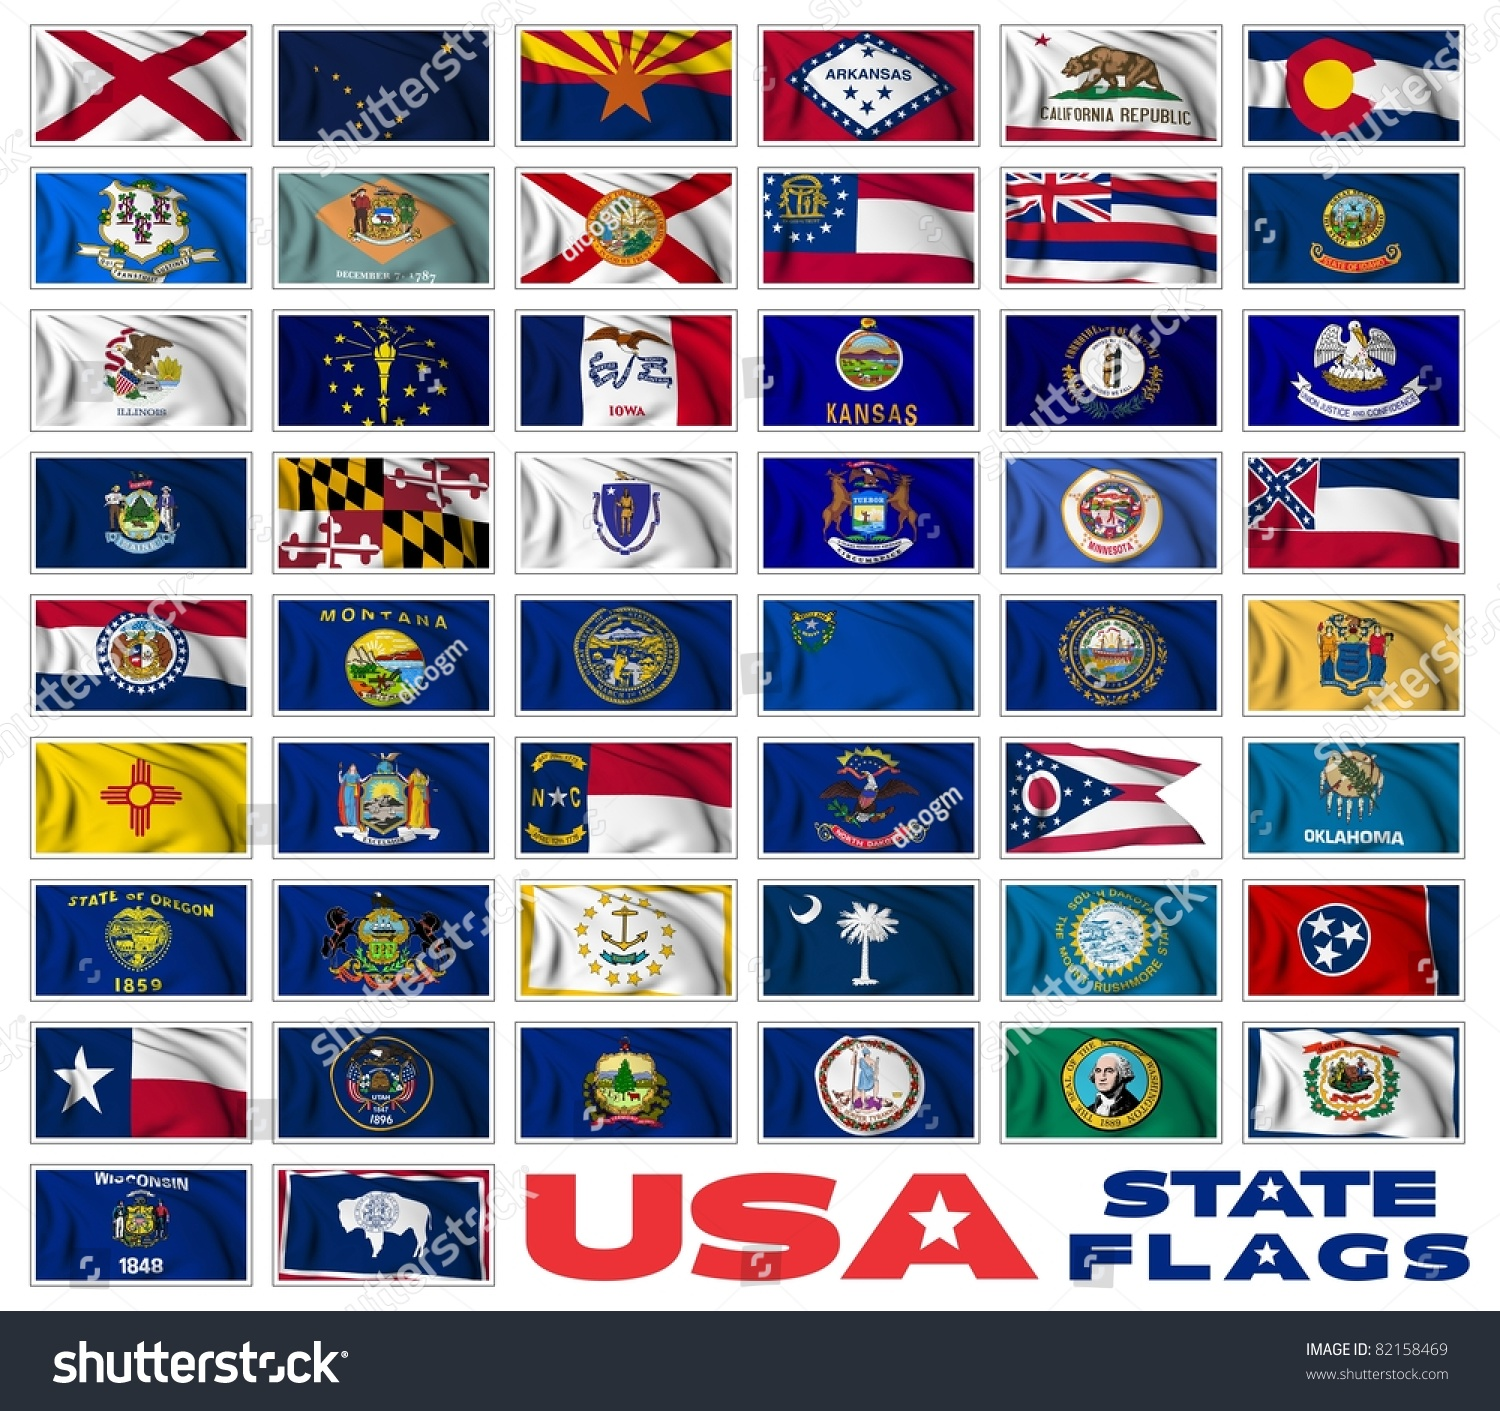 show me a map of montana with Stock Photo United States Of America States Flags Collection on South Carolina Lpn Requirements And Training Programs likewise Durango Purgatory trailmap in addition No Ifs Or Butts The Miley Cyrus Twerking Bobble Butt Is Here together with Platte River Drainage Basin Landform Origins Colorado Wyoming And Nebraska Usa Overview Essay besides Content.